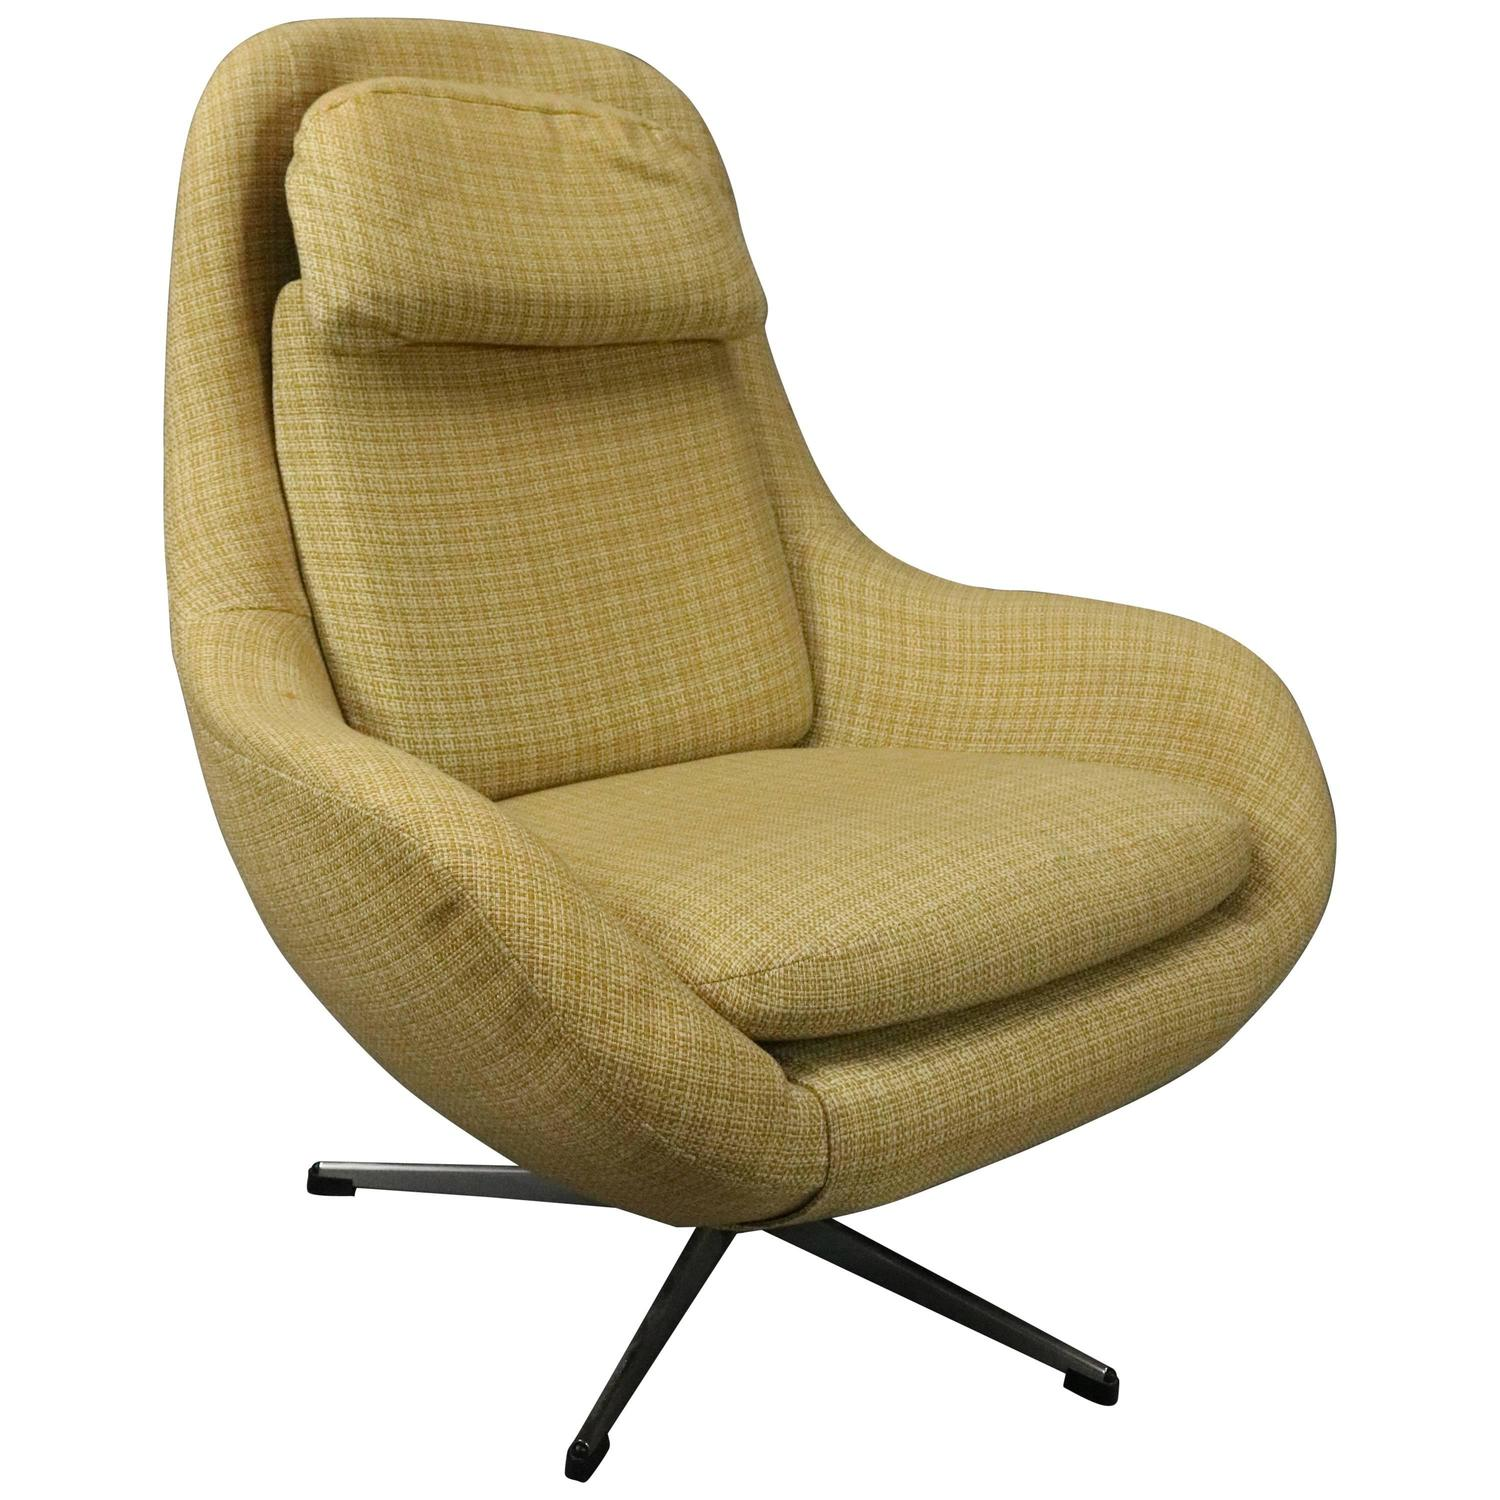 NK Collection Modern Swivel Chair Upholstered in Maroon Corduroy